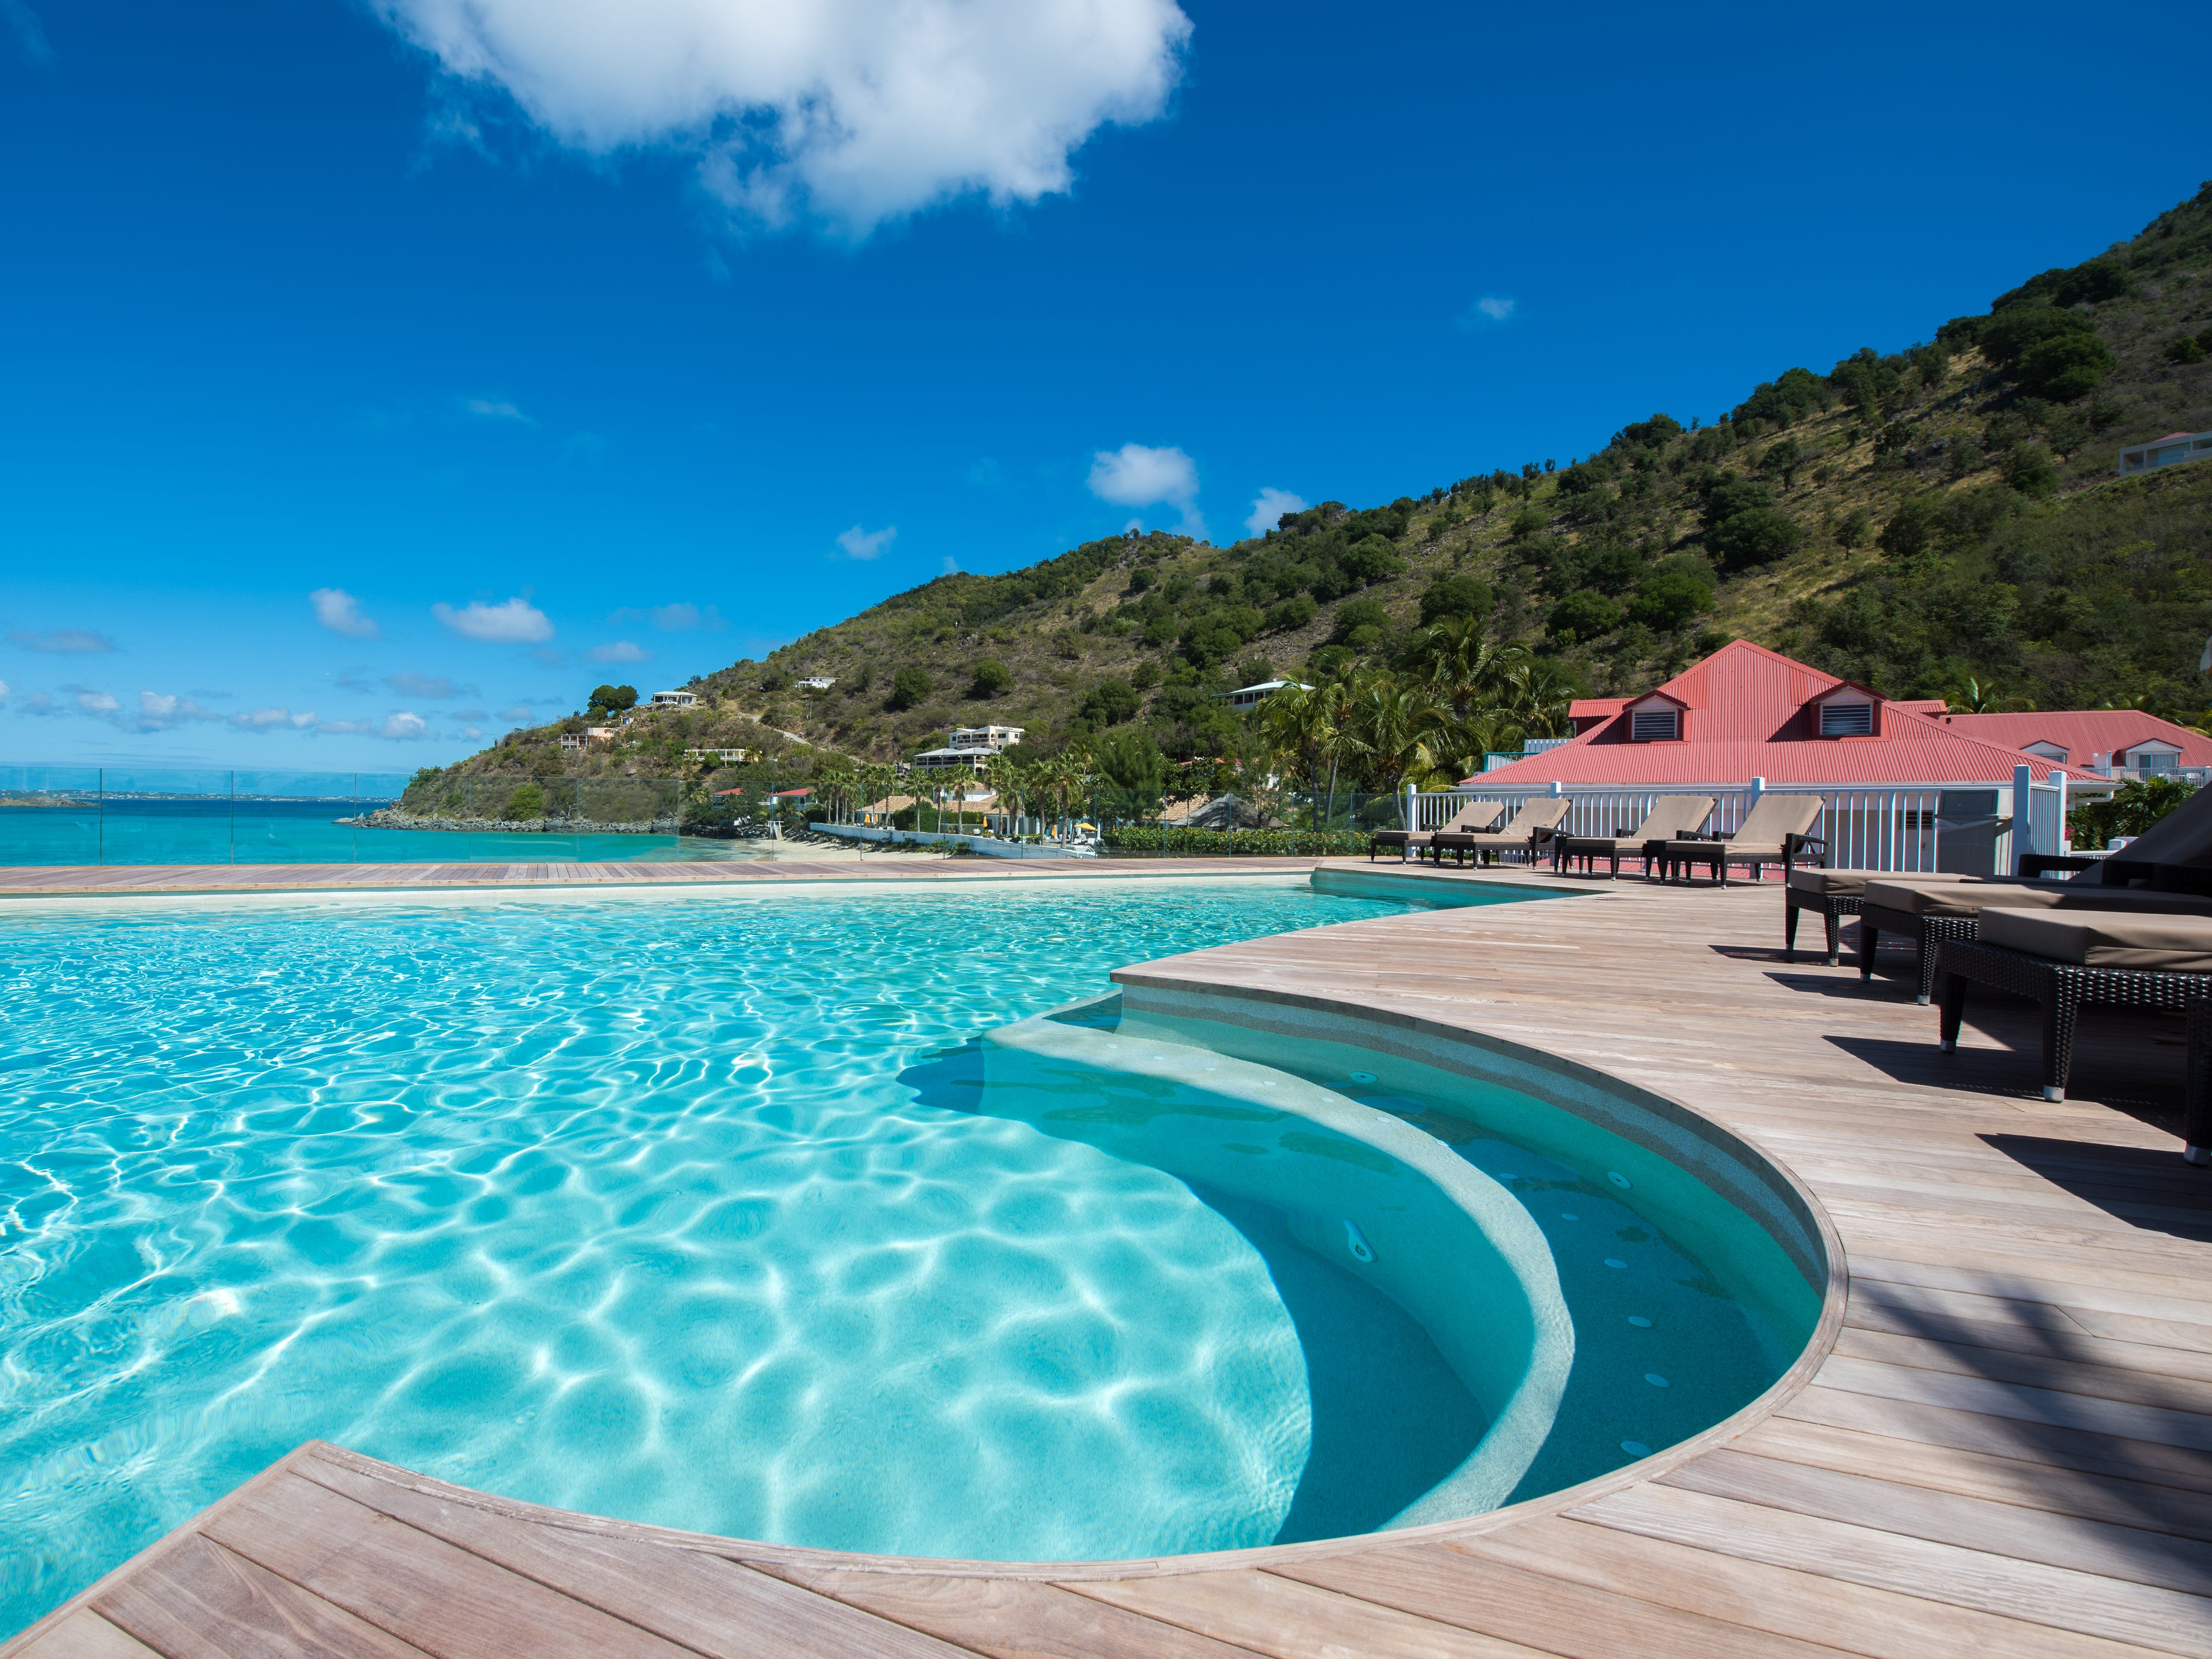 With views all the way to Anguilla on a clear day, the pool at the Grand Case Beach Club on St. Martin is perched high atop the beach and the sea.